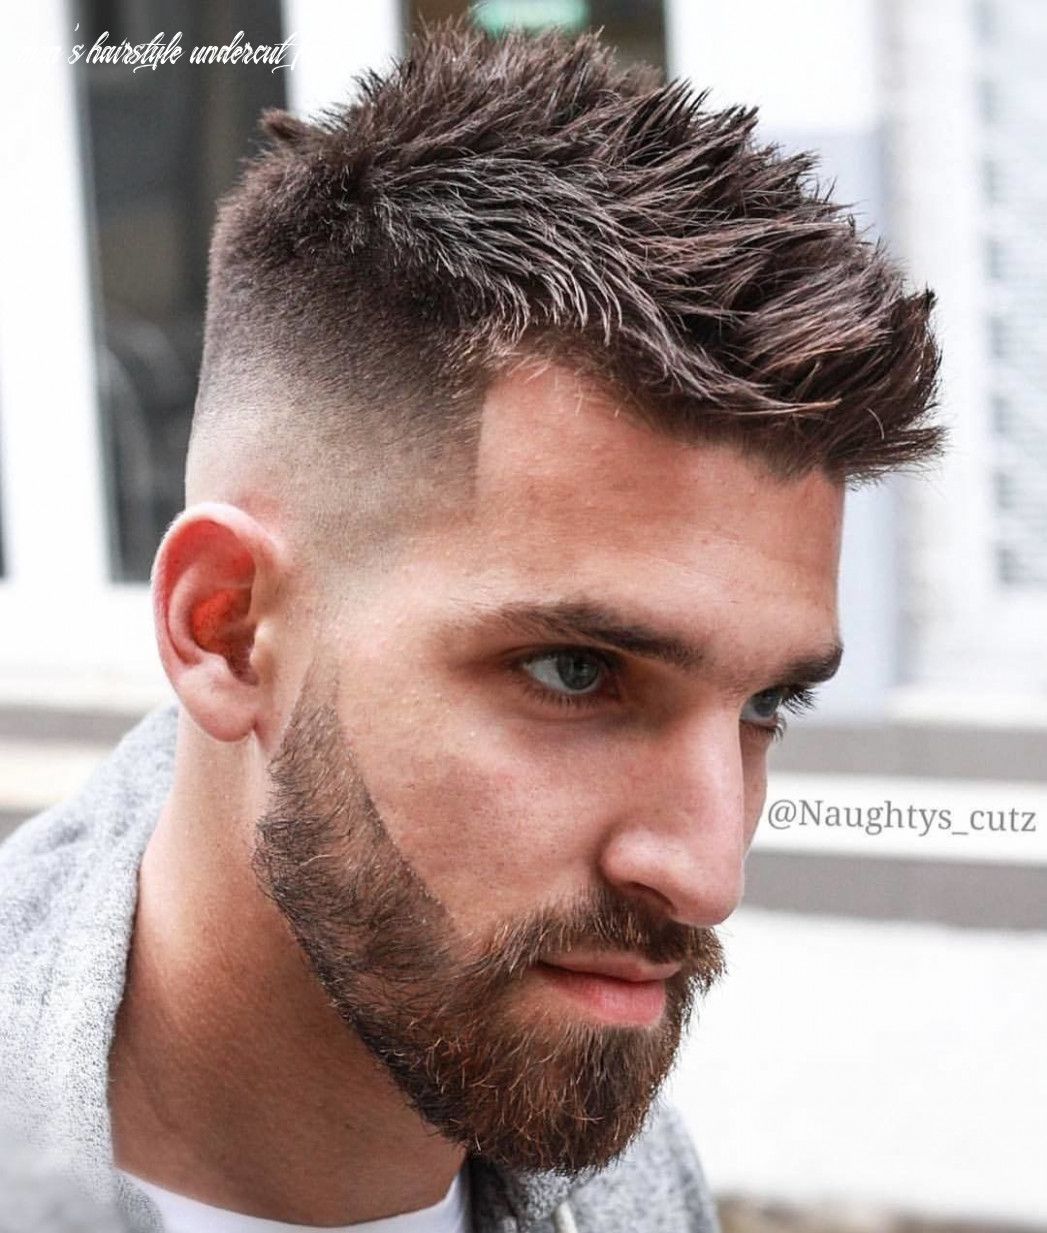 12 cool undercut hairstyles for men | mens hairstyles undercut